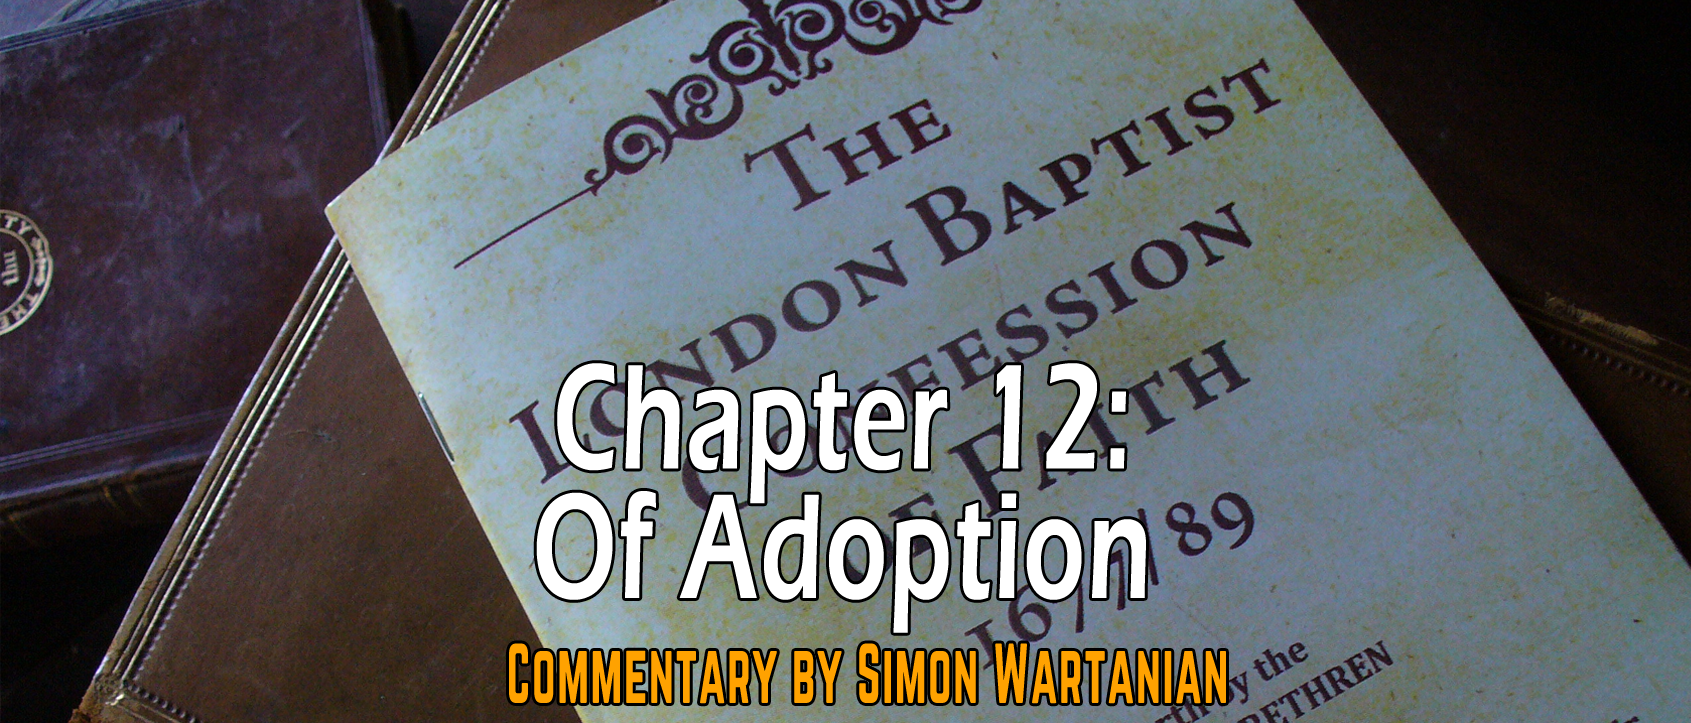 1689 Baptist Confession Chapter 12: Of Adoption - Commentary